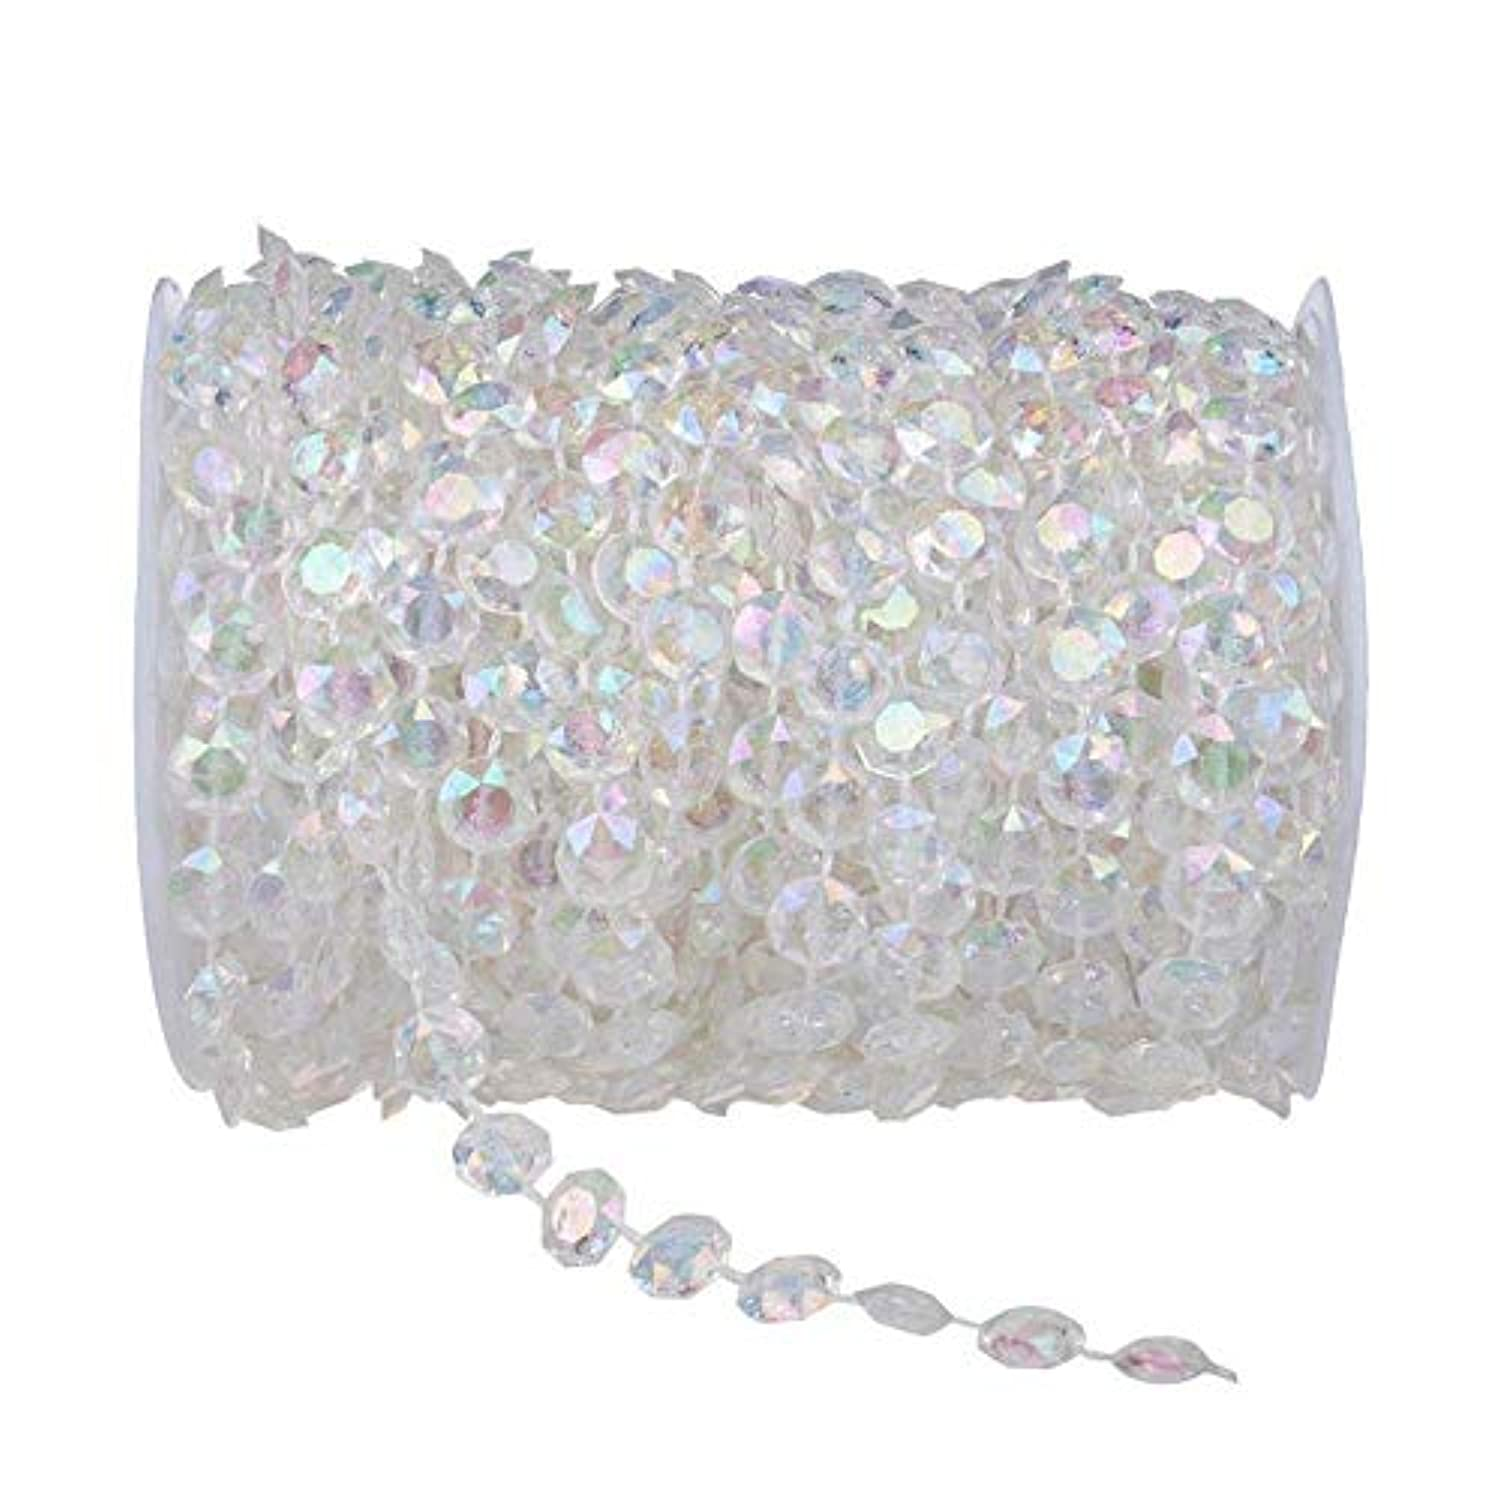 Colorsheng 99 ft Crystal Like Beads String Bead Chain Crystal Garland by the roll - Wedding Decorations Christmas Partyand Good for Home Yard Decoration (Colorful)